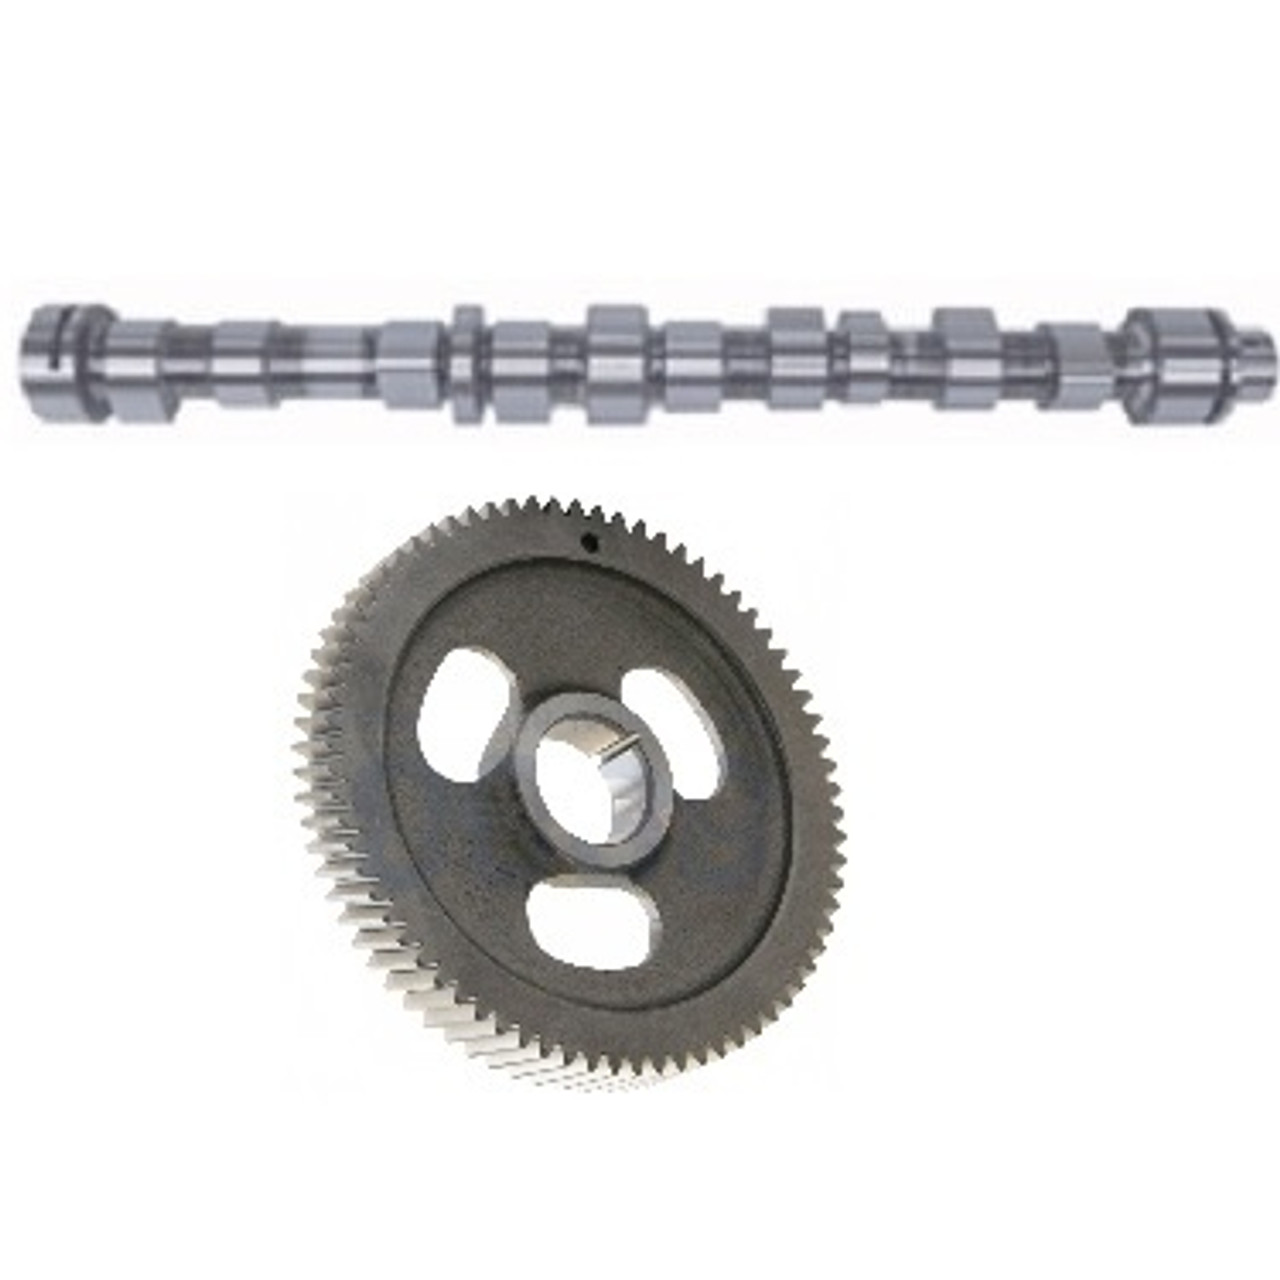 Camshaft and Gear